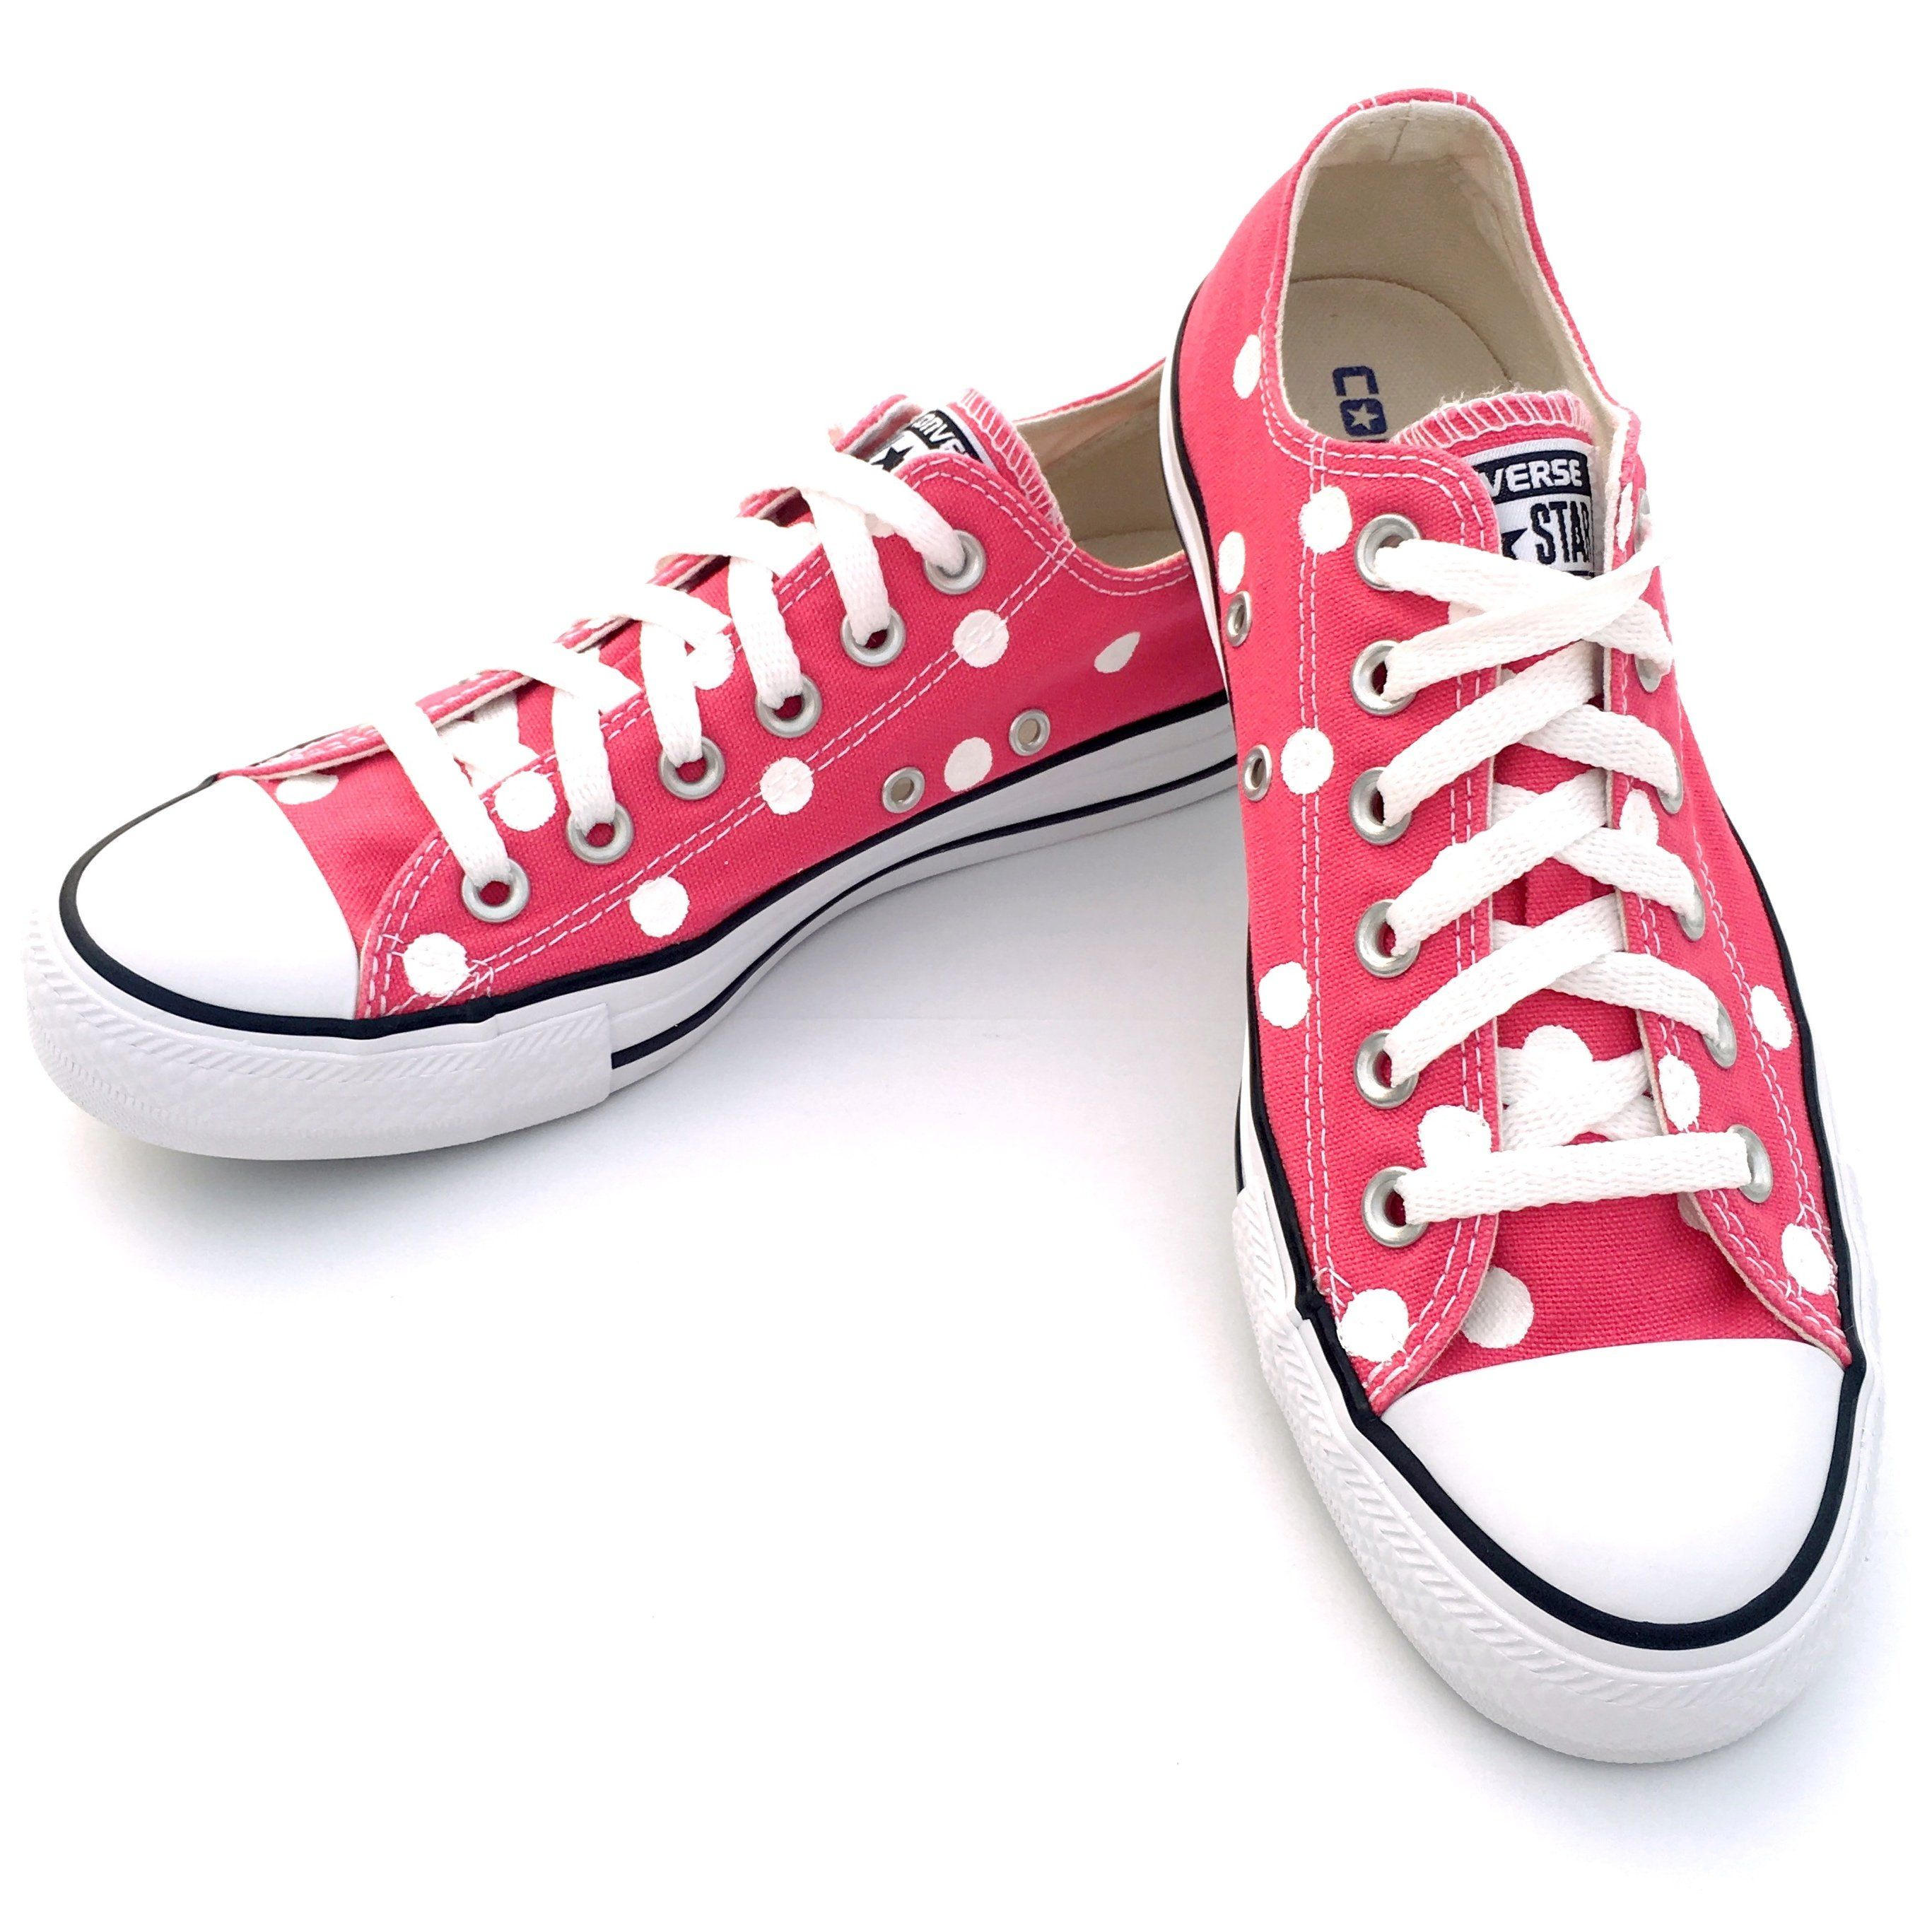 df7c2161d0bf RASPBERRY PINK Converse with Hand Painted White Polka Dots - Women s Size 7  - Men s Size 5 by ShamrockQuilting on Etsy